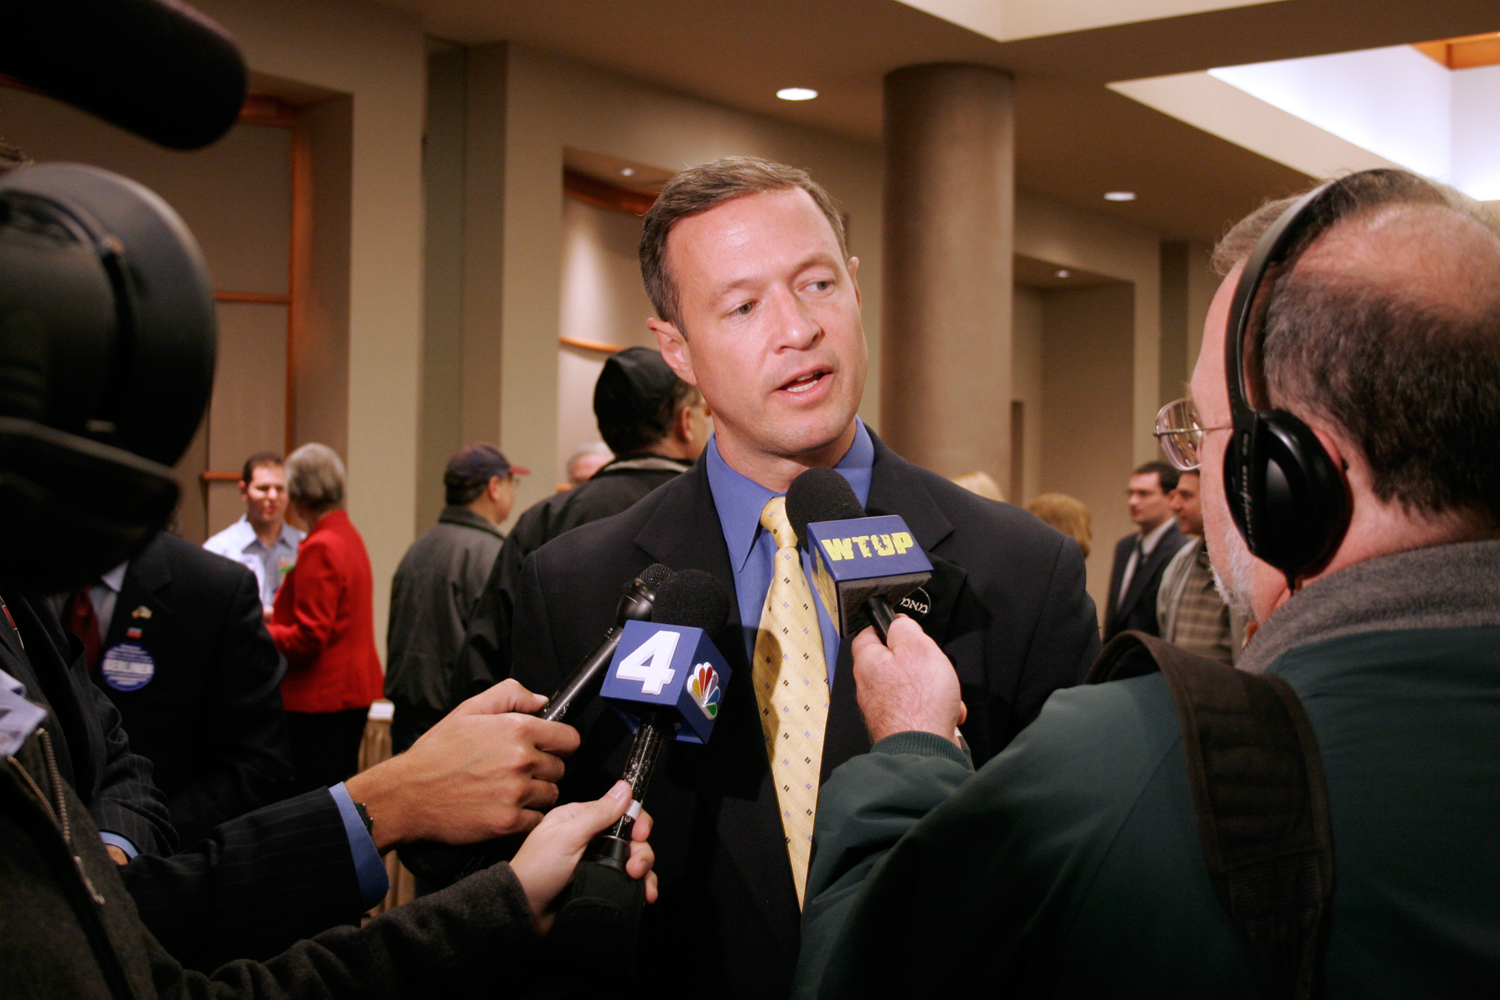 Former MD Gov. Martin O'Malley